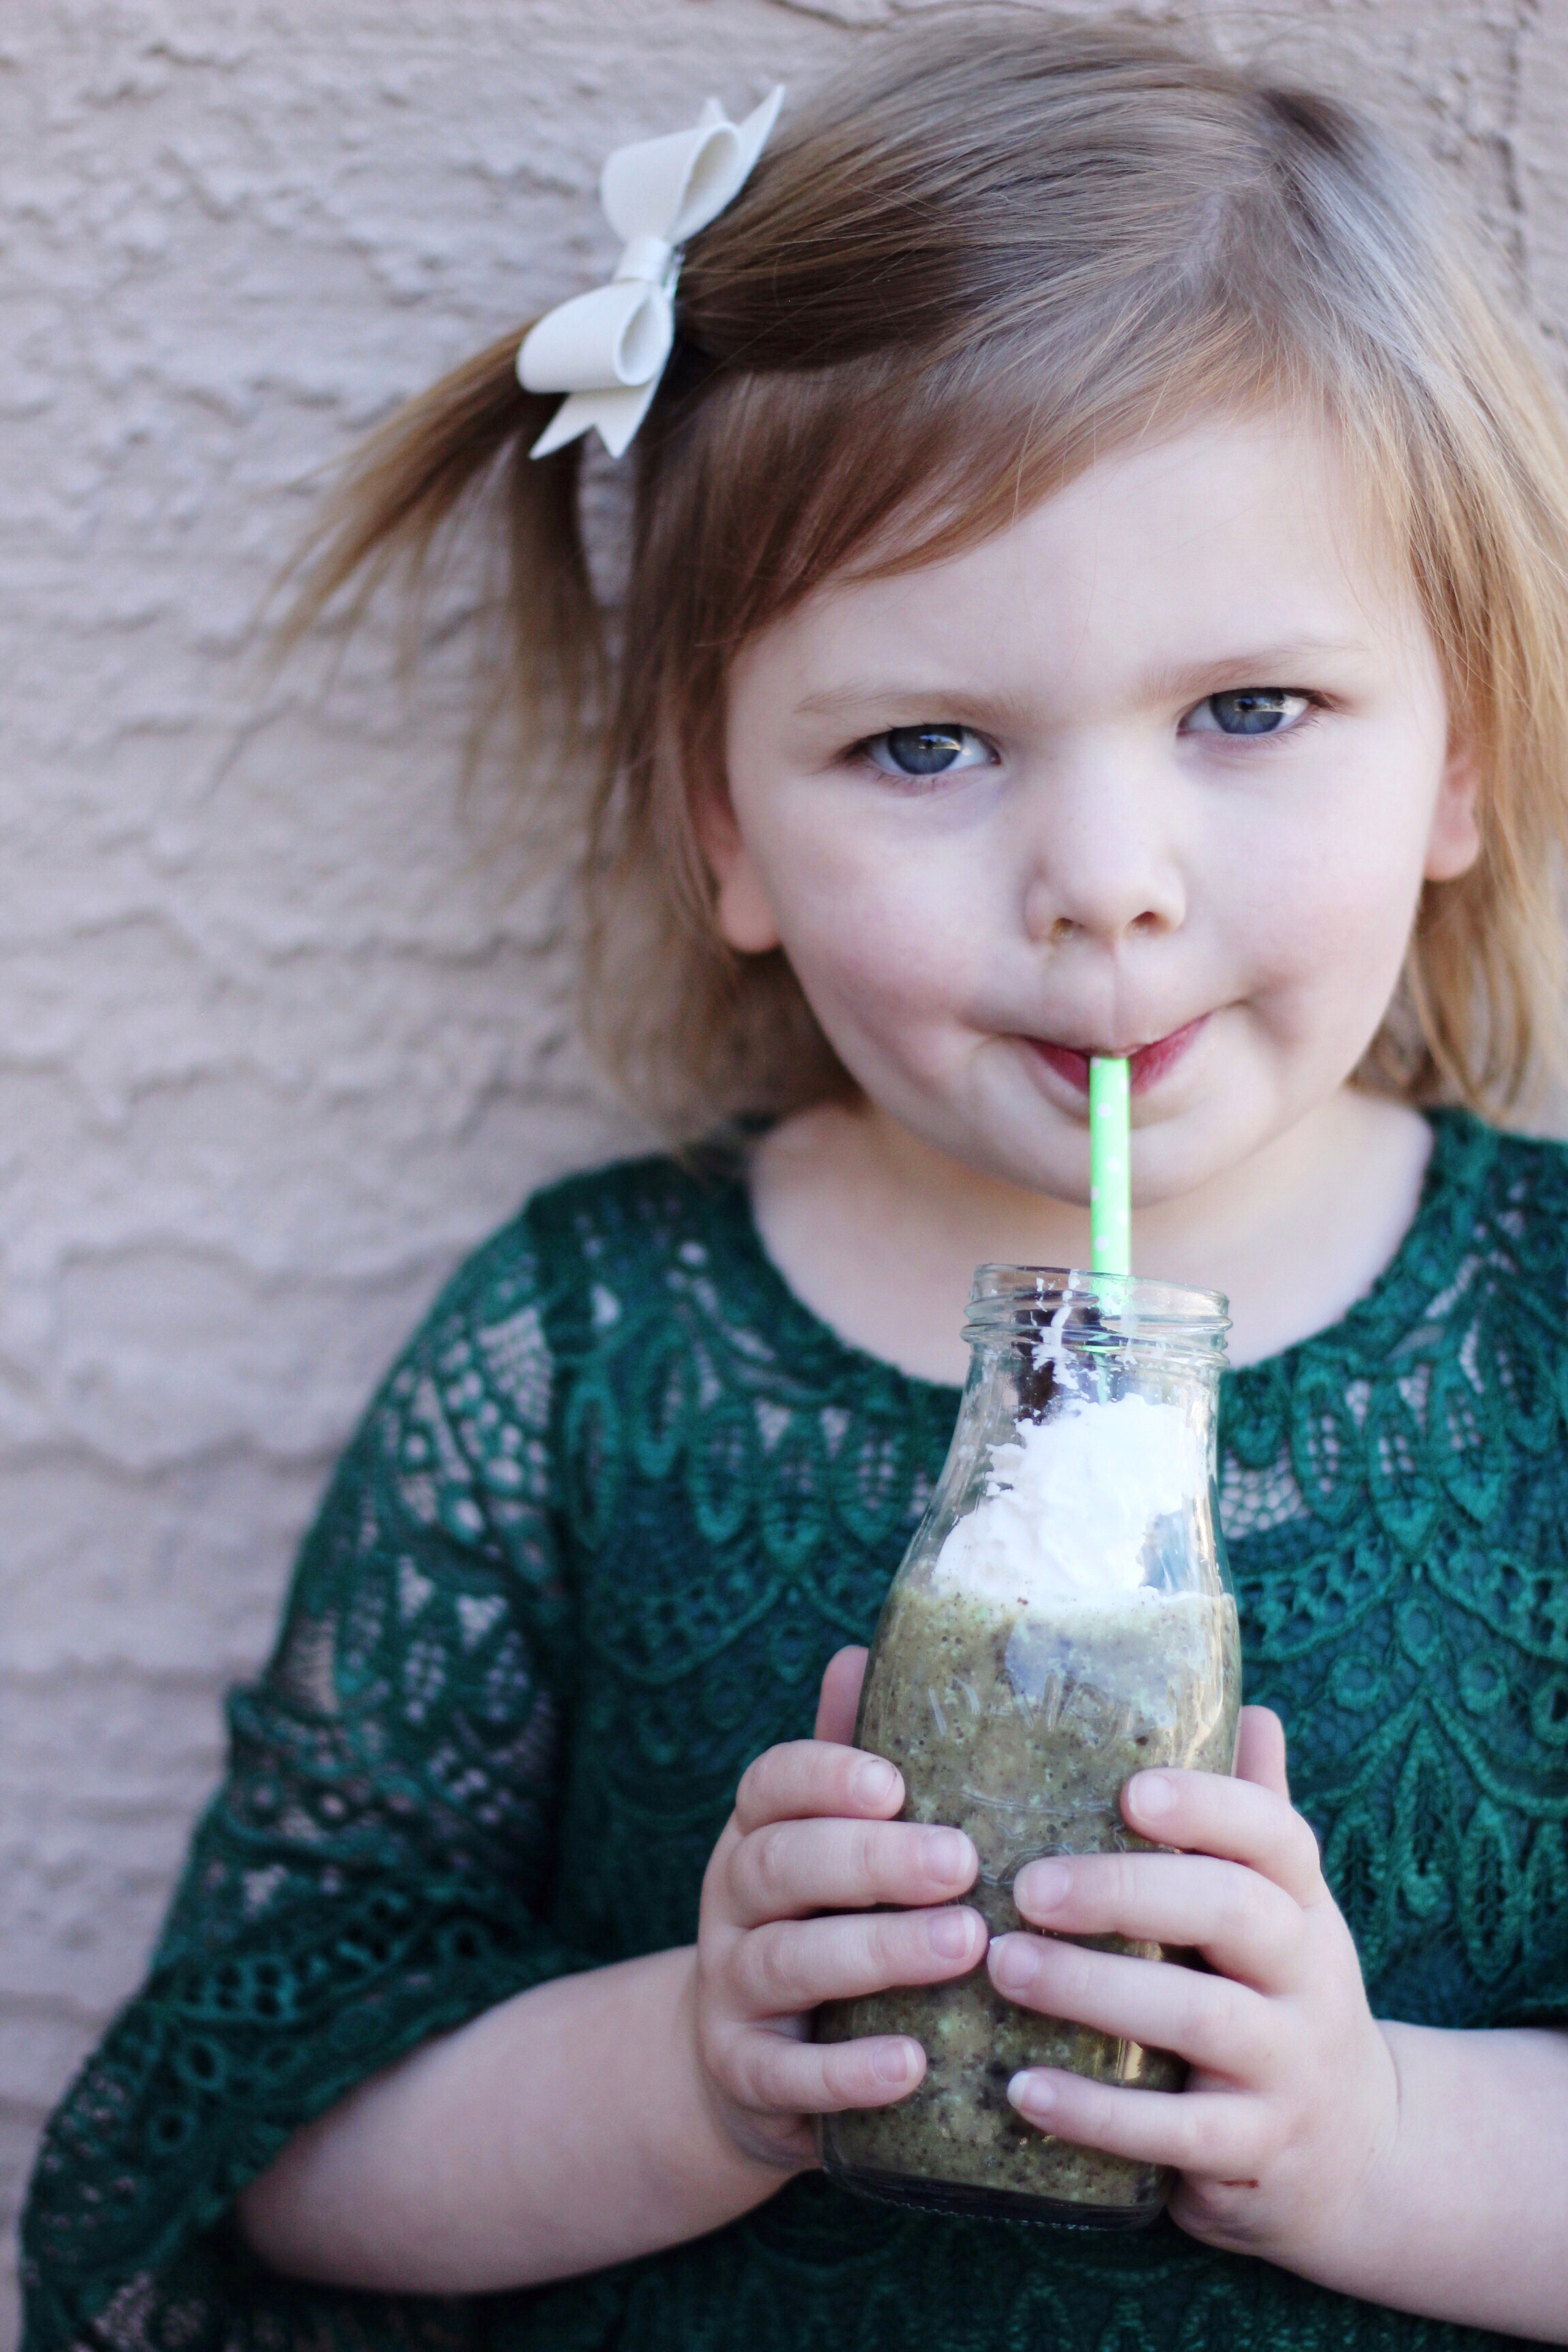 A close up of a little girl smiling while drinking a shamrock shake